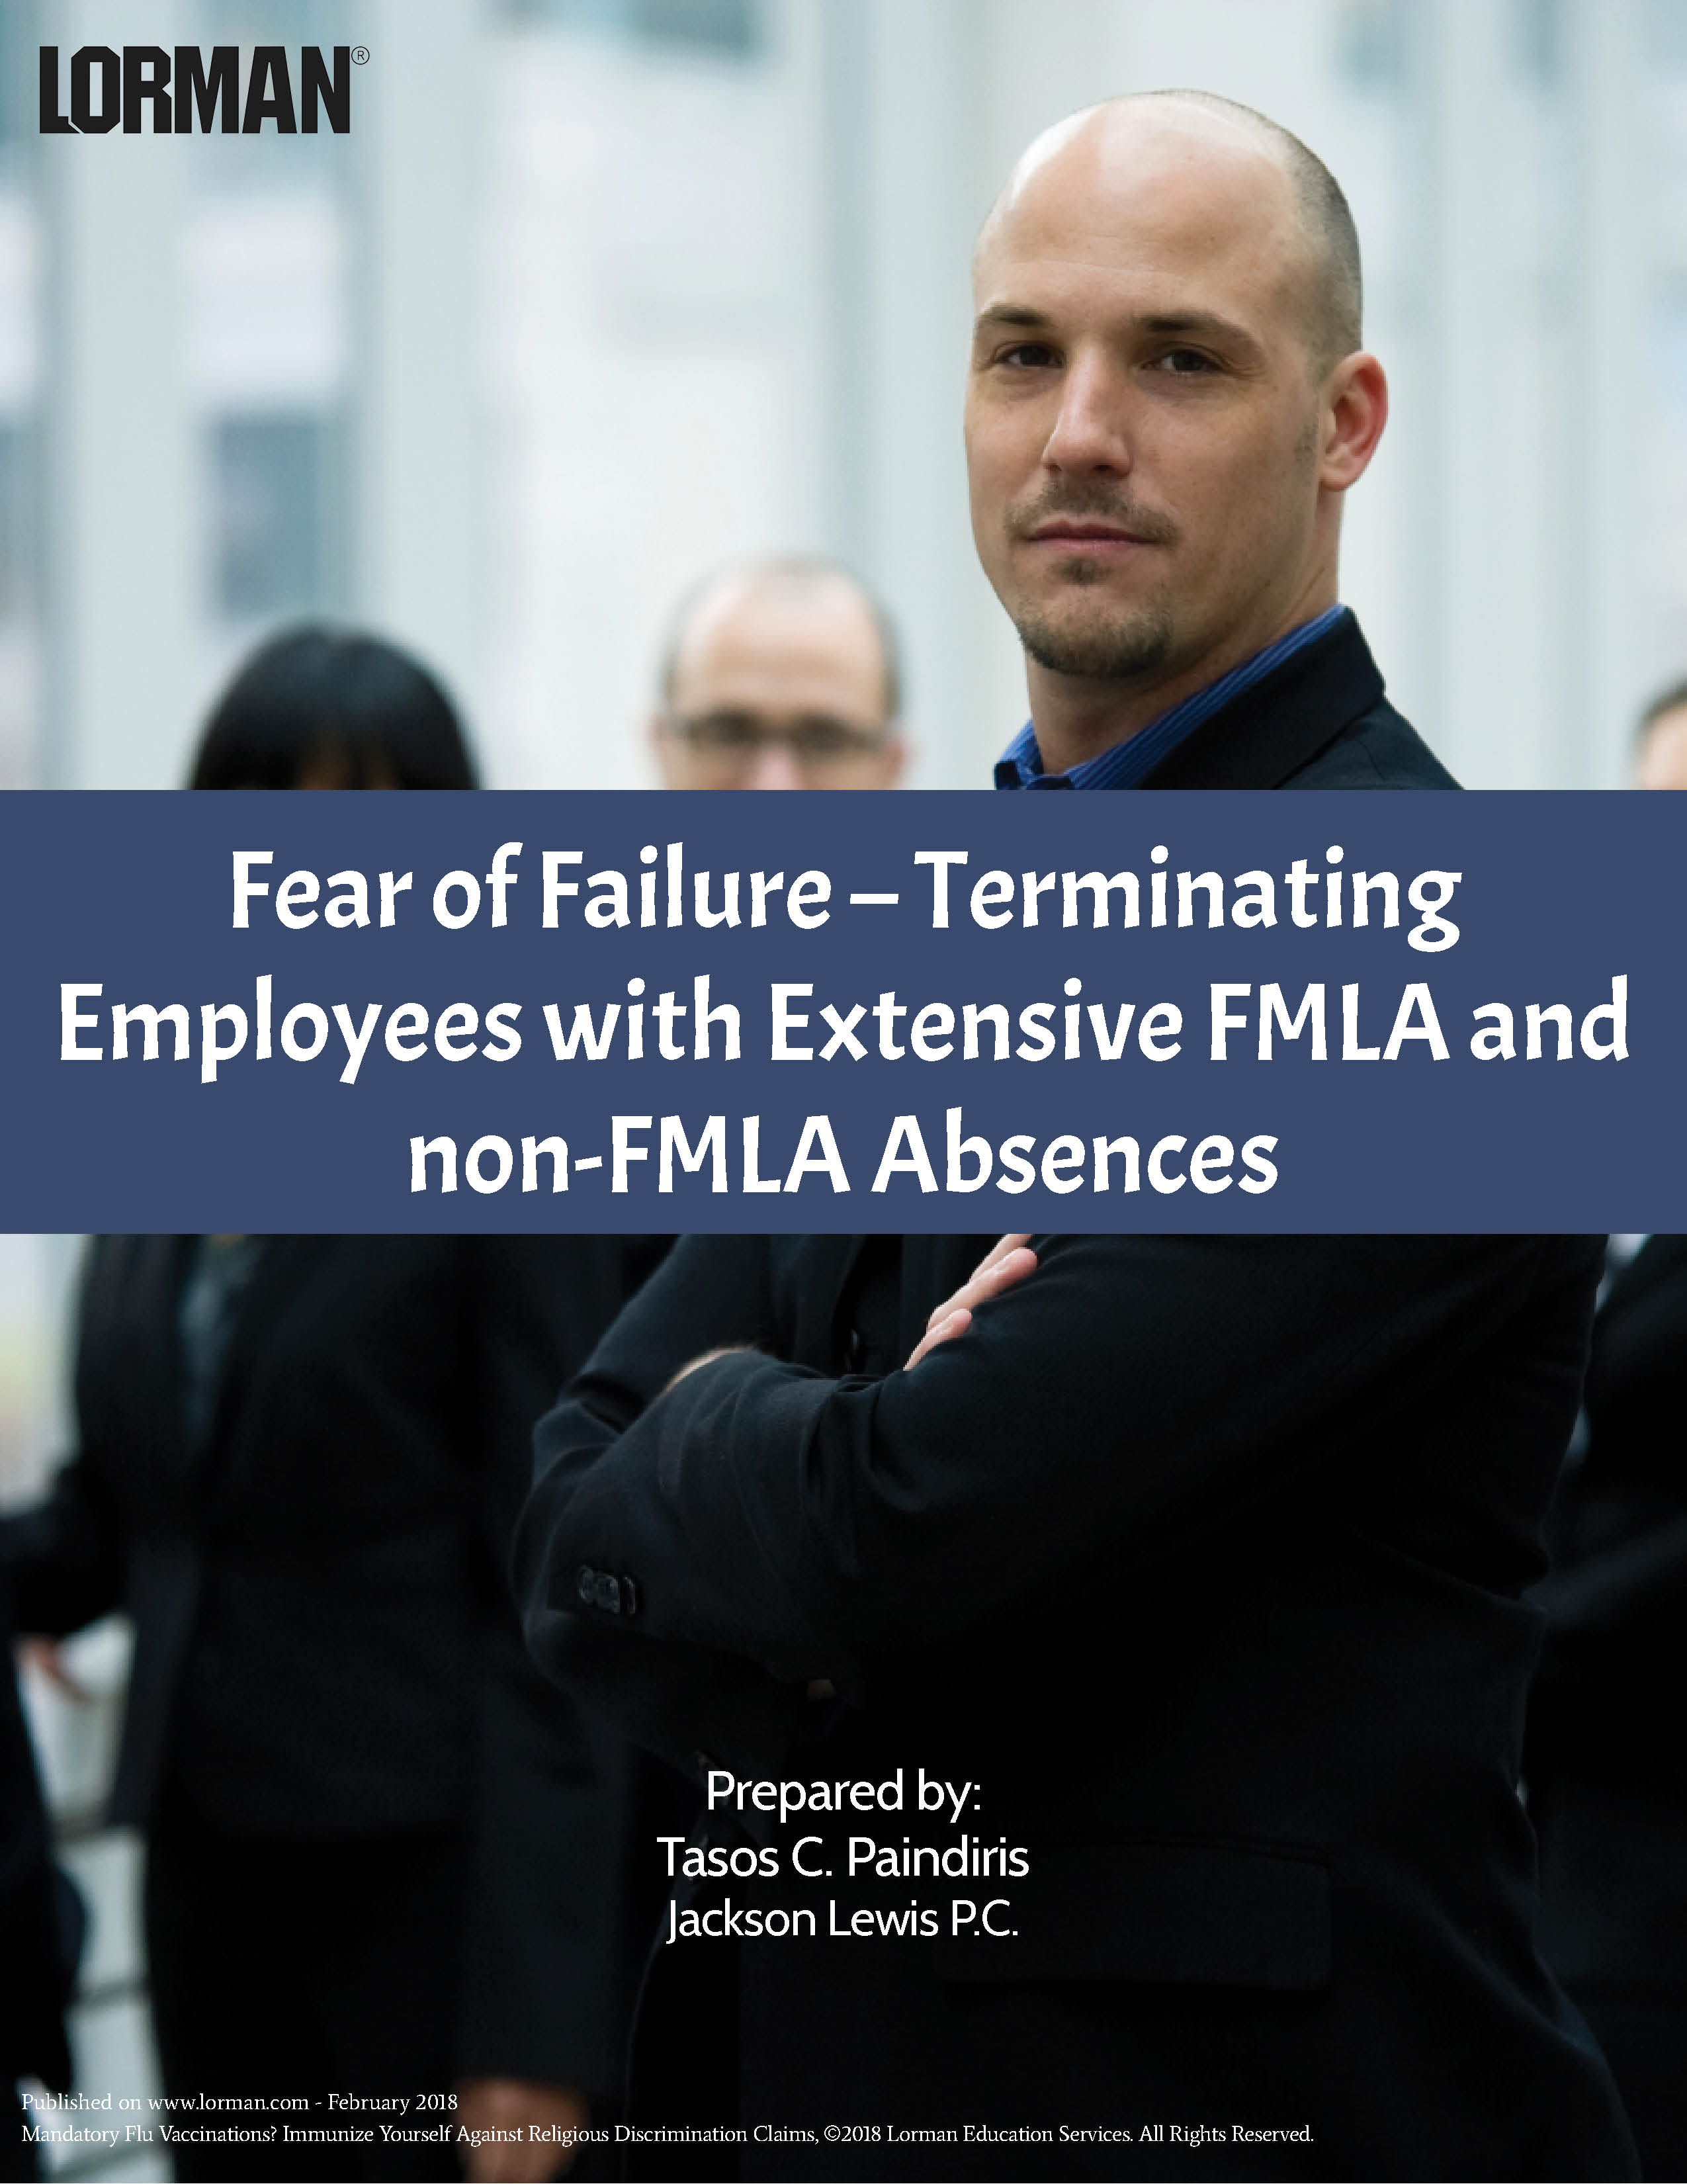 Fear of Failure - Terminating Employees with Extensive FMLA and non-FMLA Absences